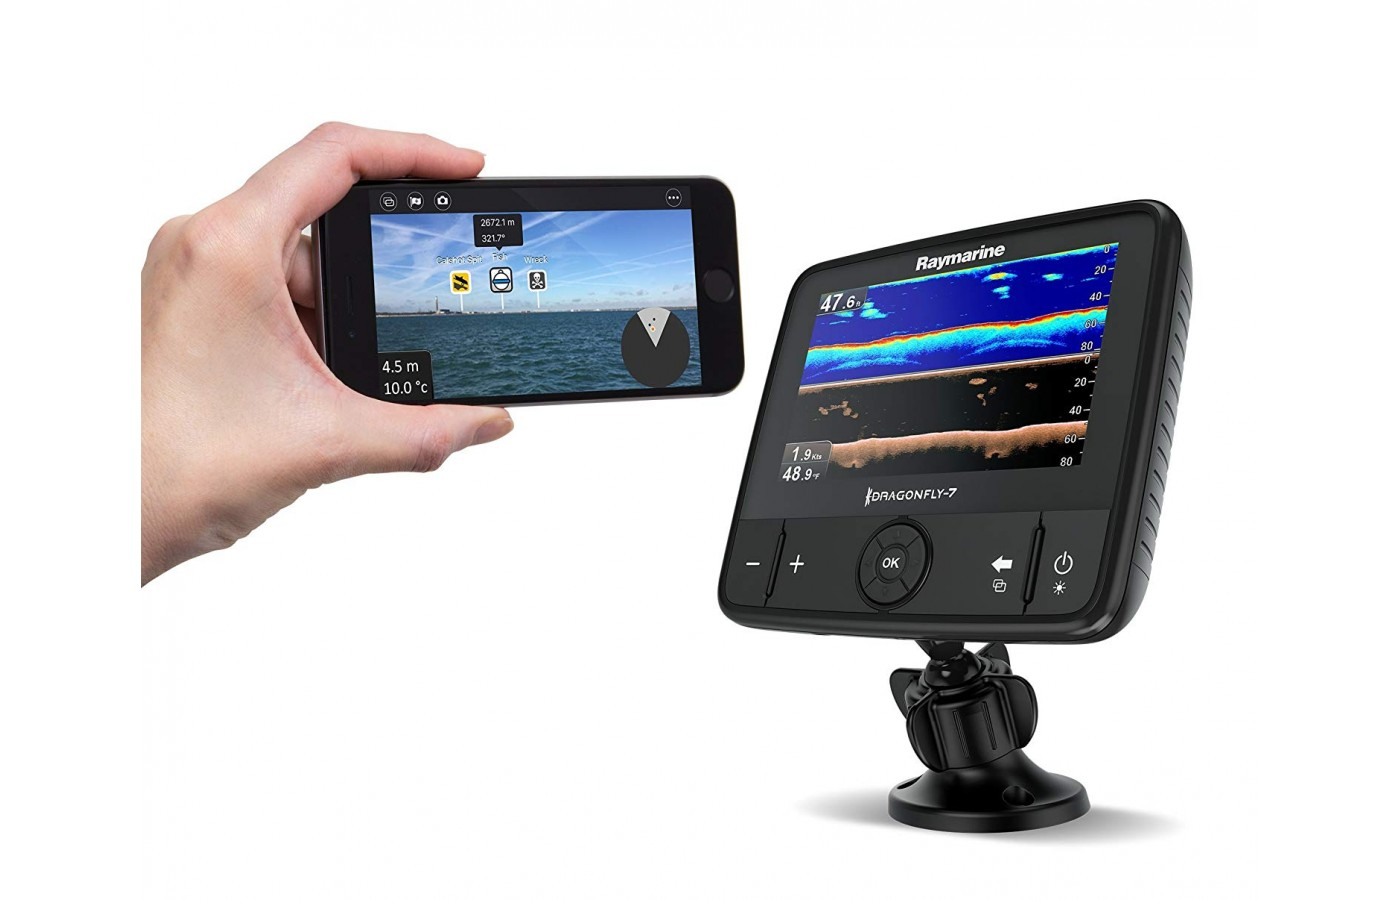 The newer device has built in Wi-Fi that allows others to download information on a smartphone that is the same as the fish finder.